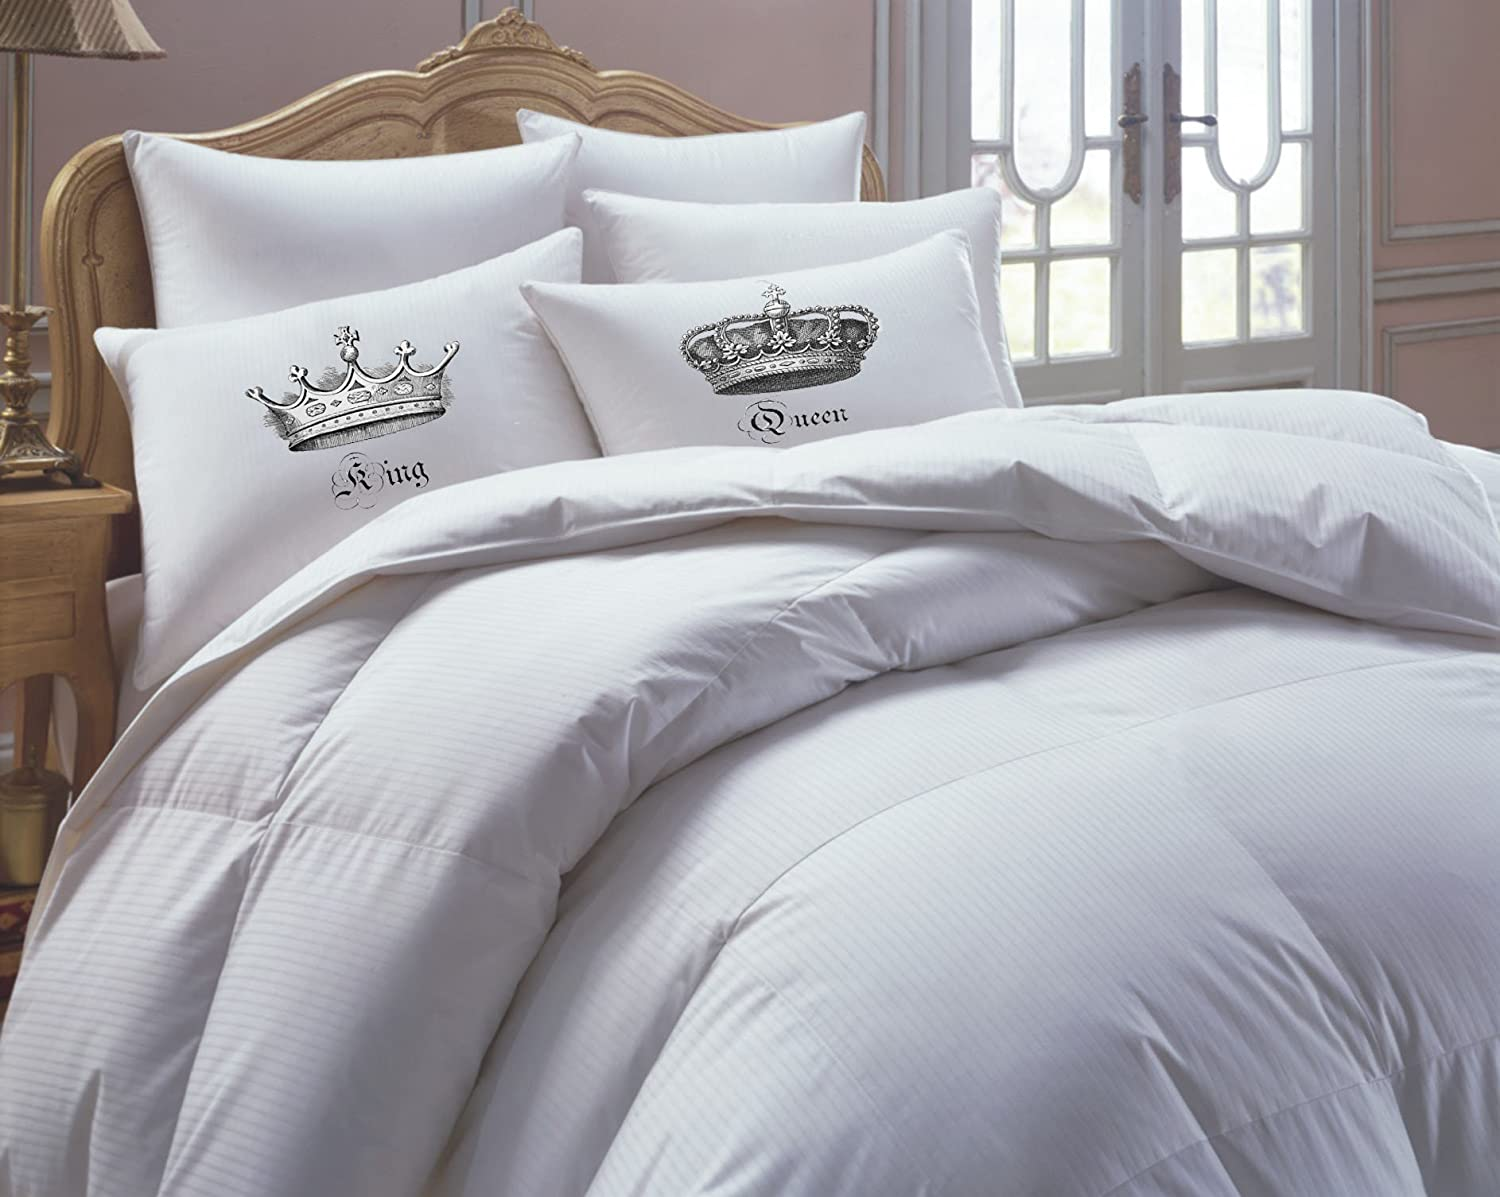 King and Queen Pillowcases, Couples Gift, His Hers Pillowcase Set, Couples Pillowcase Set, King and Queen Pillowcase Set- NEW